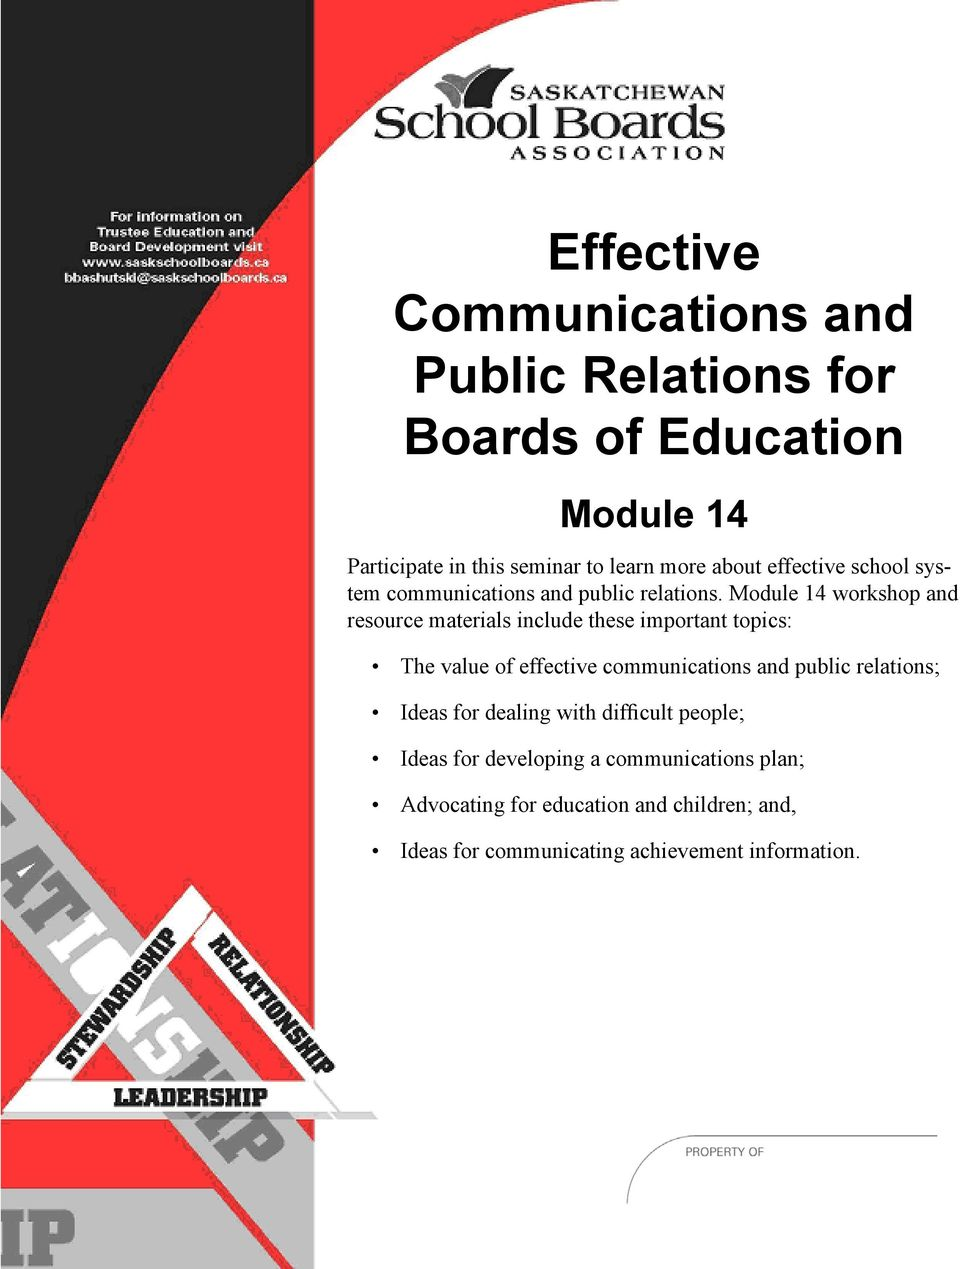 Module 14 workshop and resource materials include these important topics: The value of effective communications and public